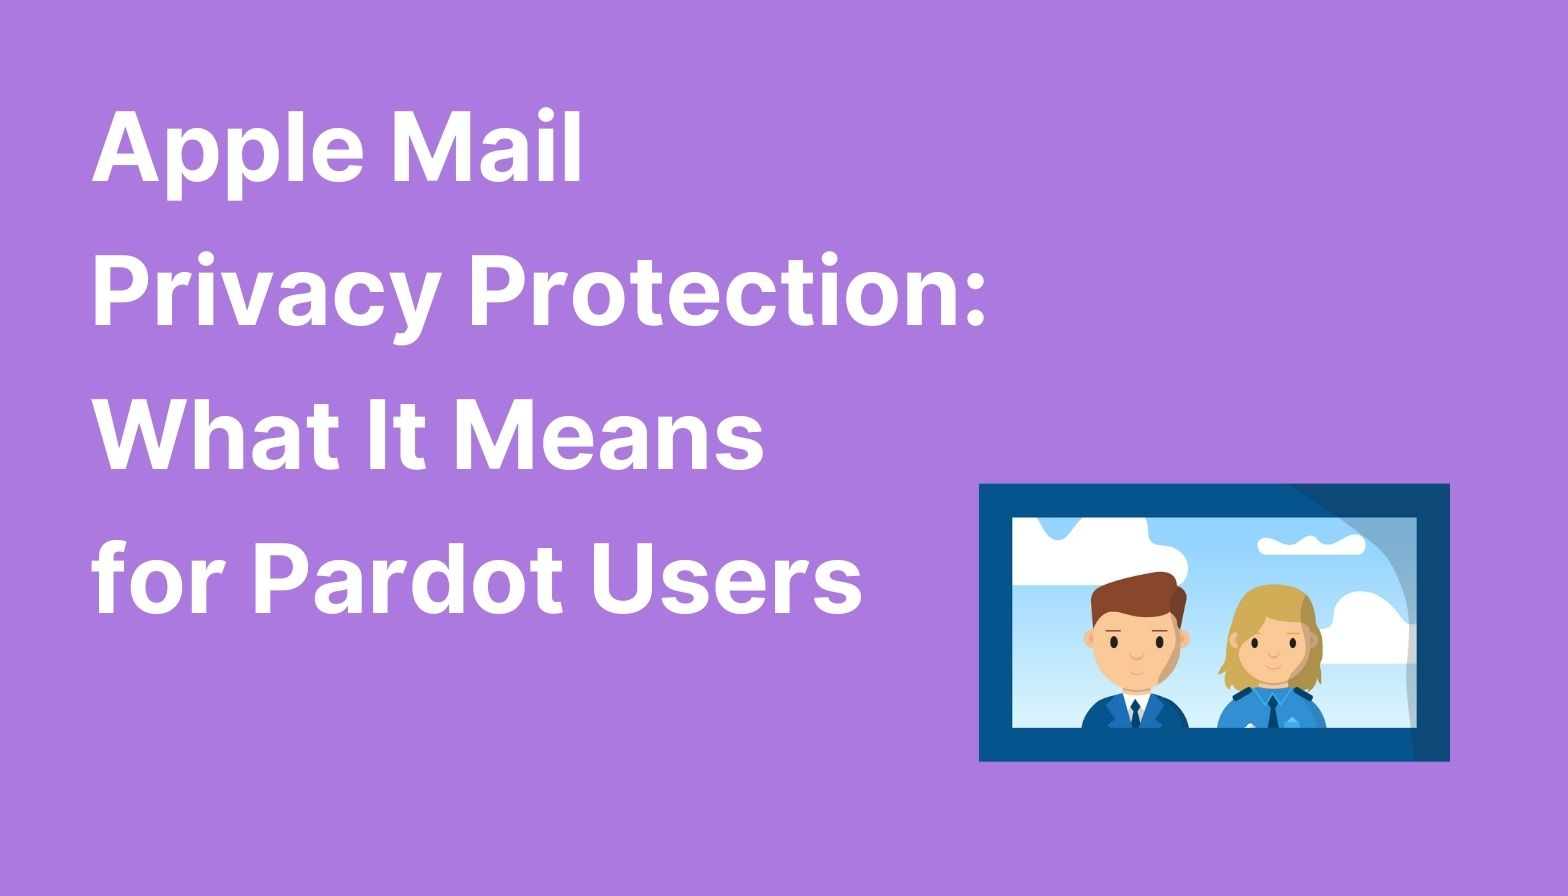 Feature image: Apple Mail Privacy Protection: What It Means for Pardot Users